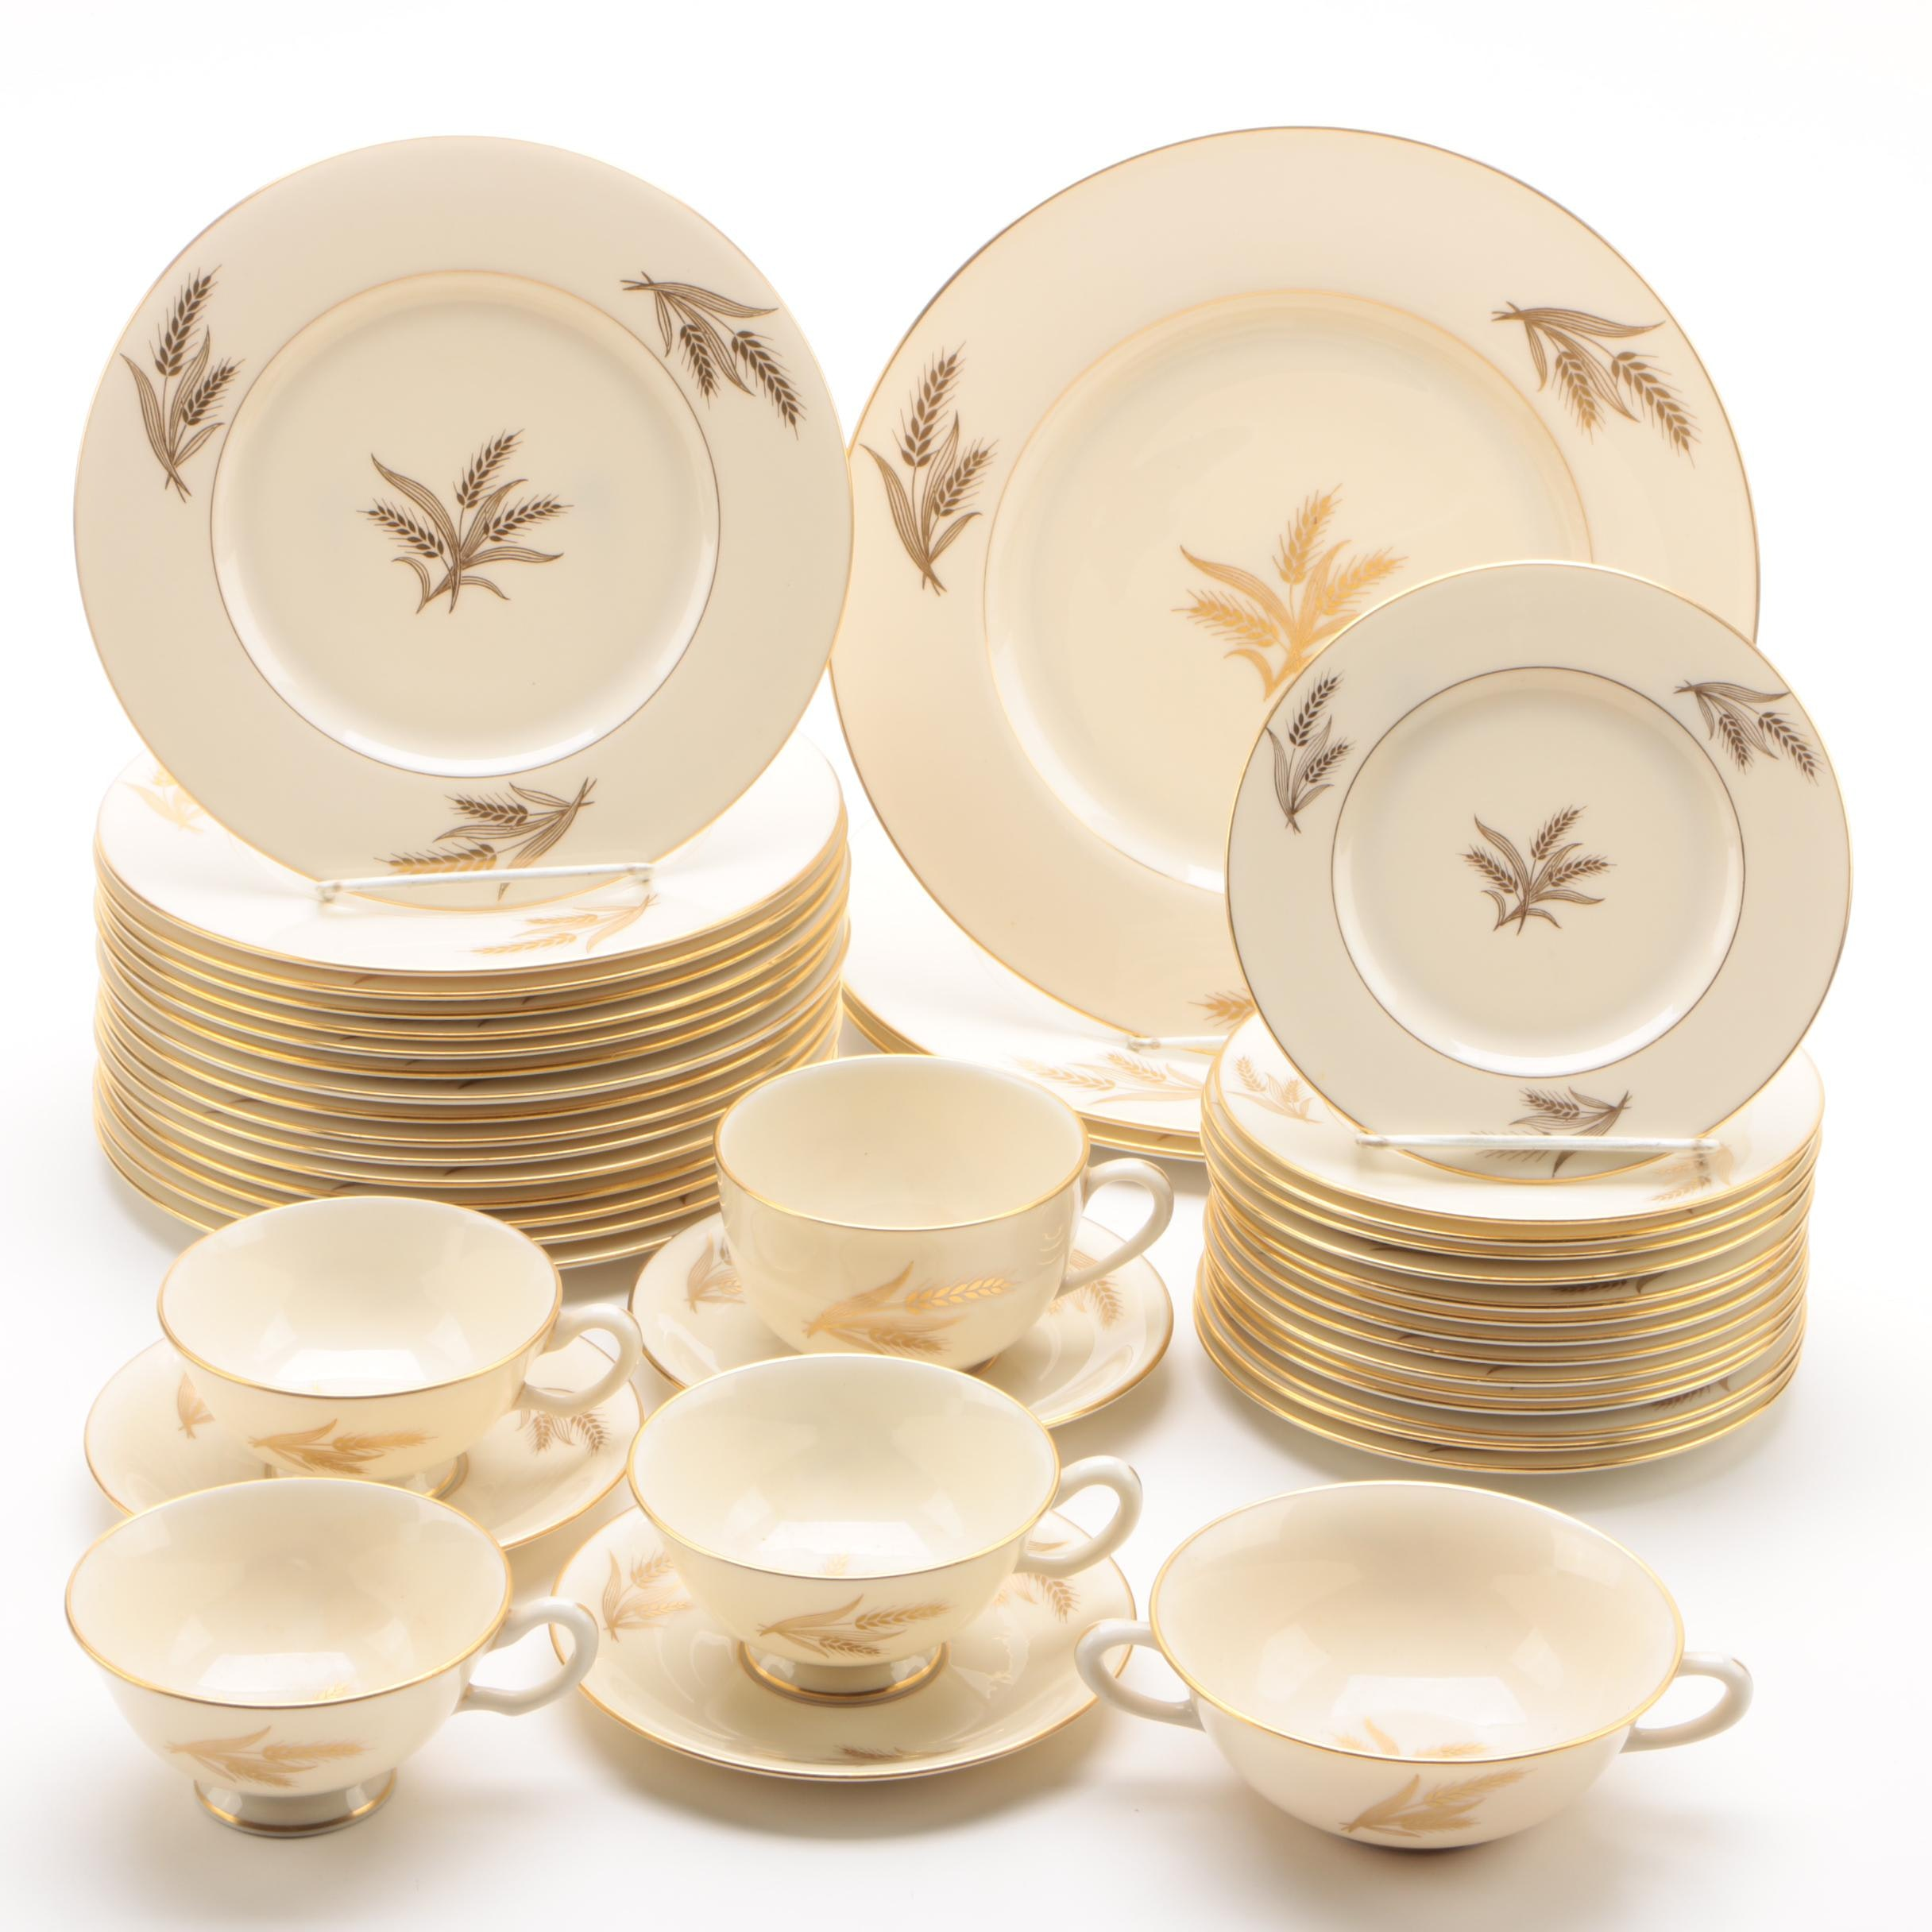 "Mid to Late 20th Century Lenox ""Harvest"" Porcelain Dinnerware Pieces"